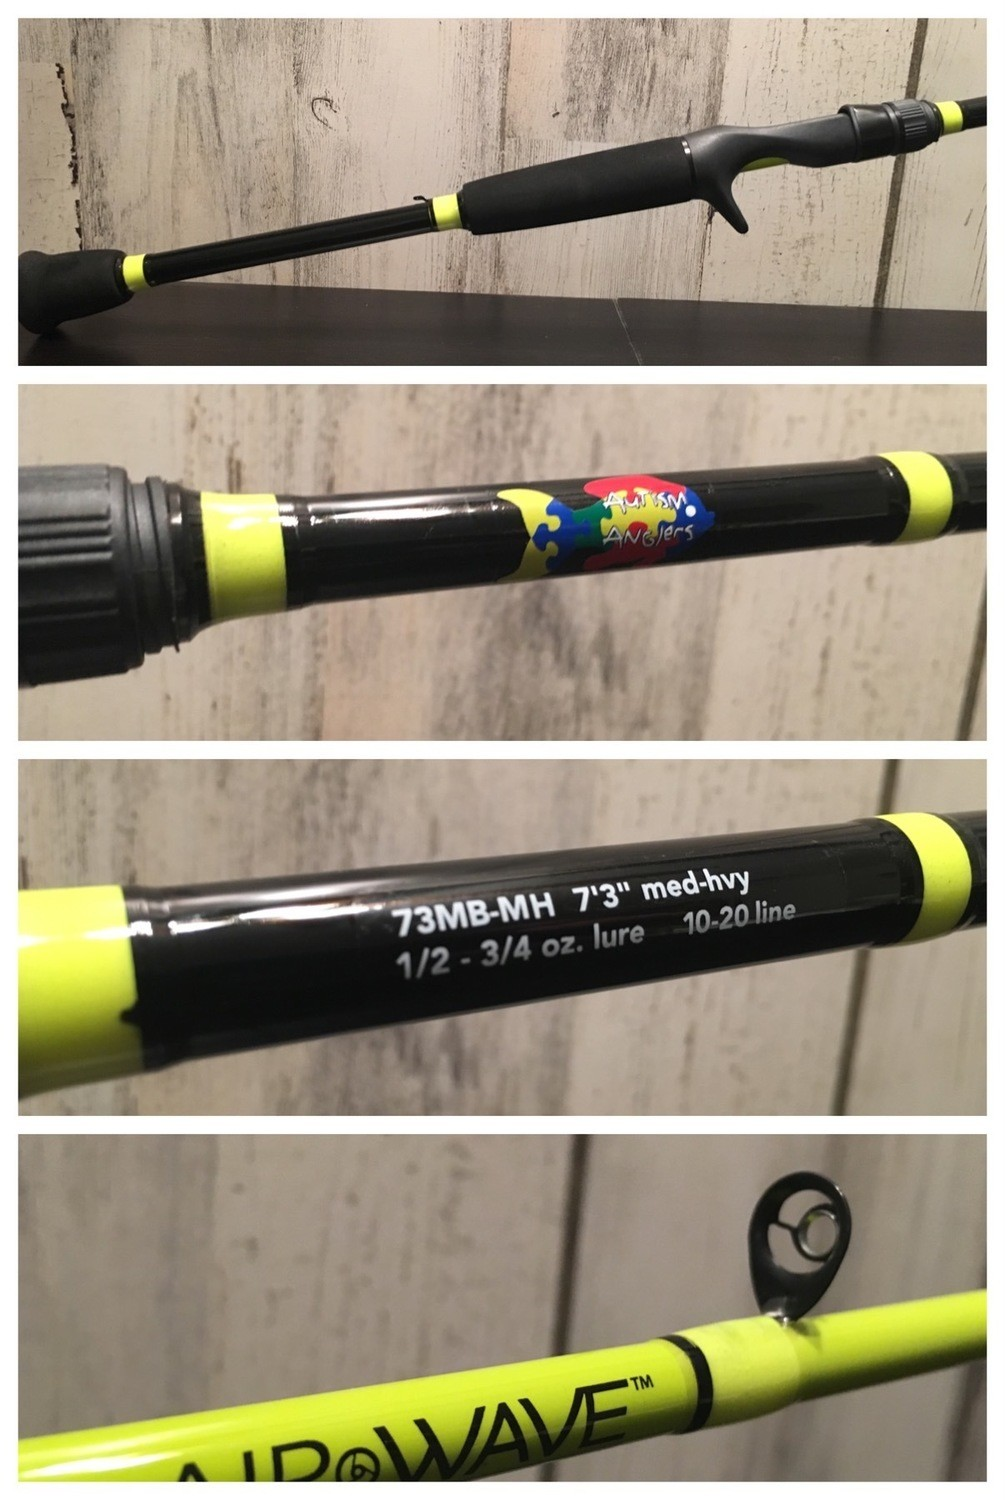 Autism Anglers Casting Rod: Yellow - Med/Hvy - SALE